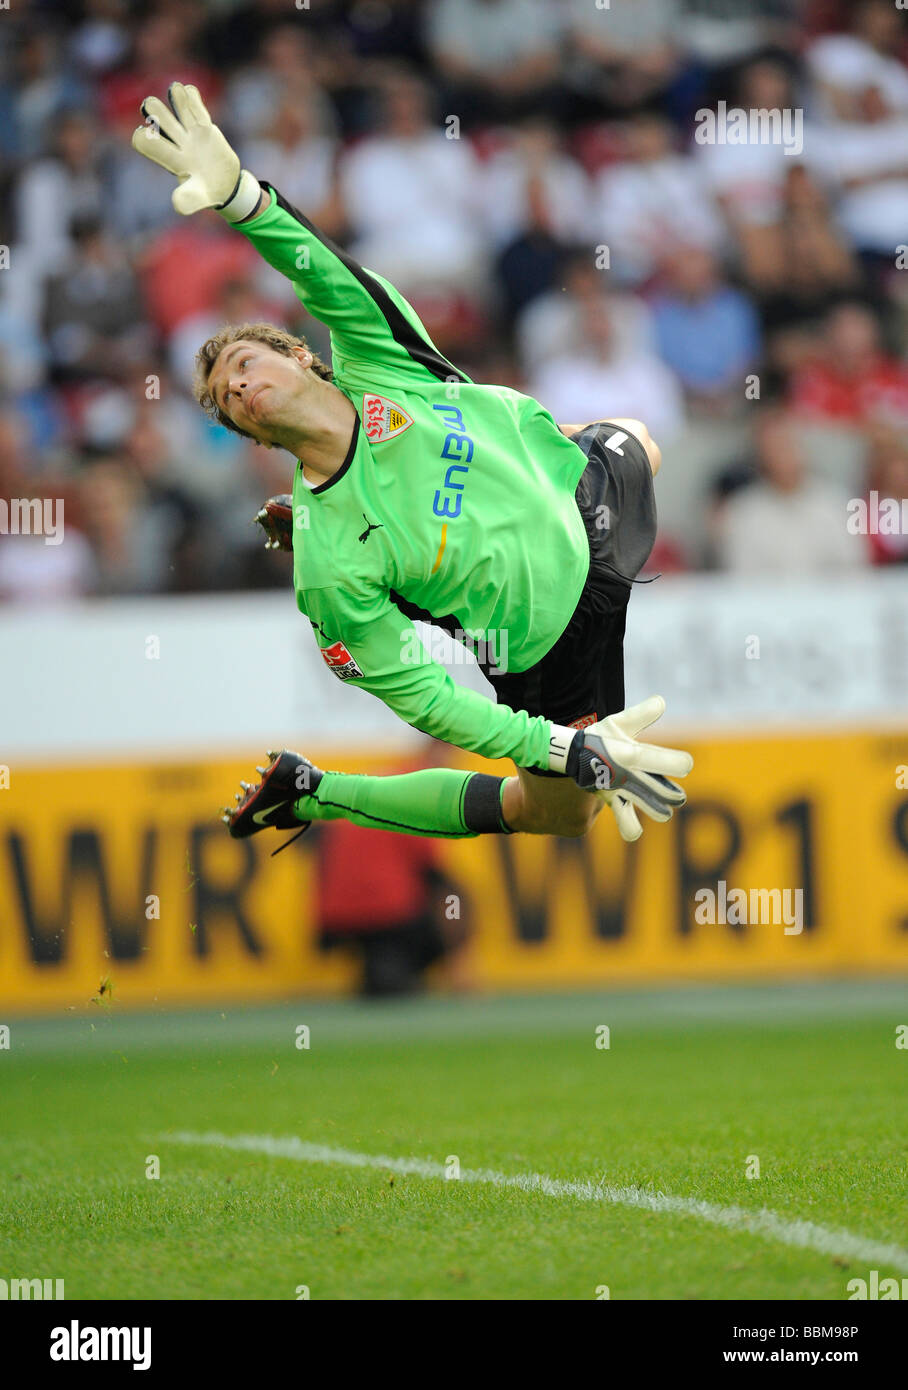 Brilliant save, goalkeeper Jens Lehmann, playing for VfB Stuttgart - Stock Image